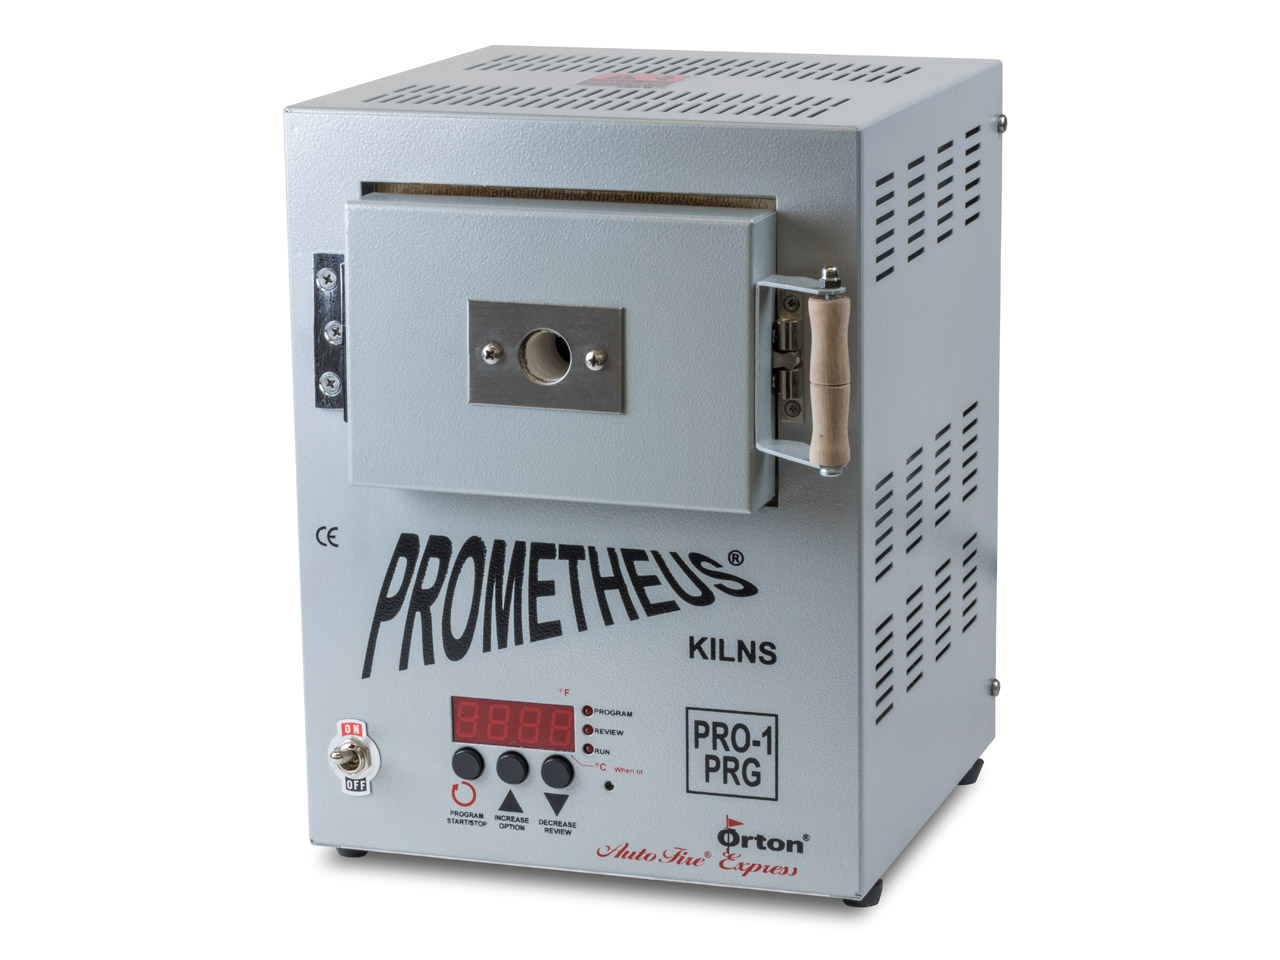 Prometheus Mini Kiln Pro1-prg      Programmable With Timer